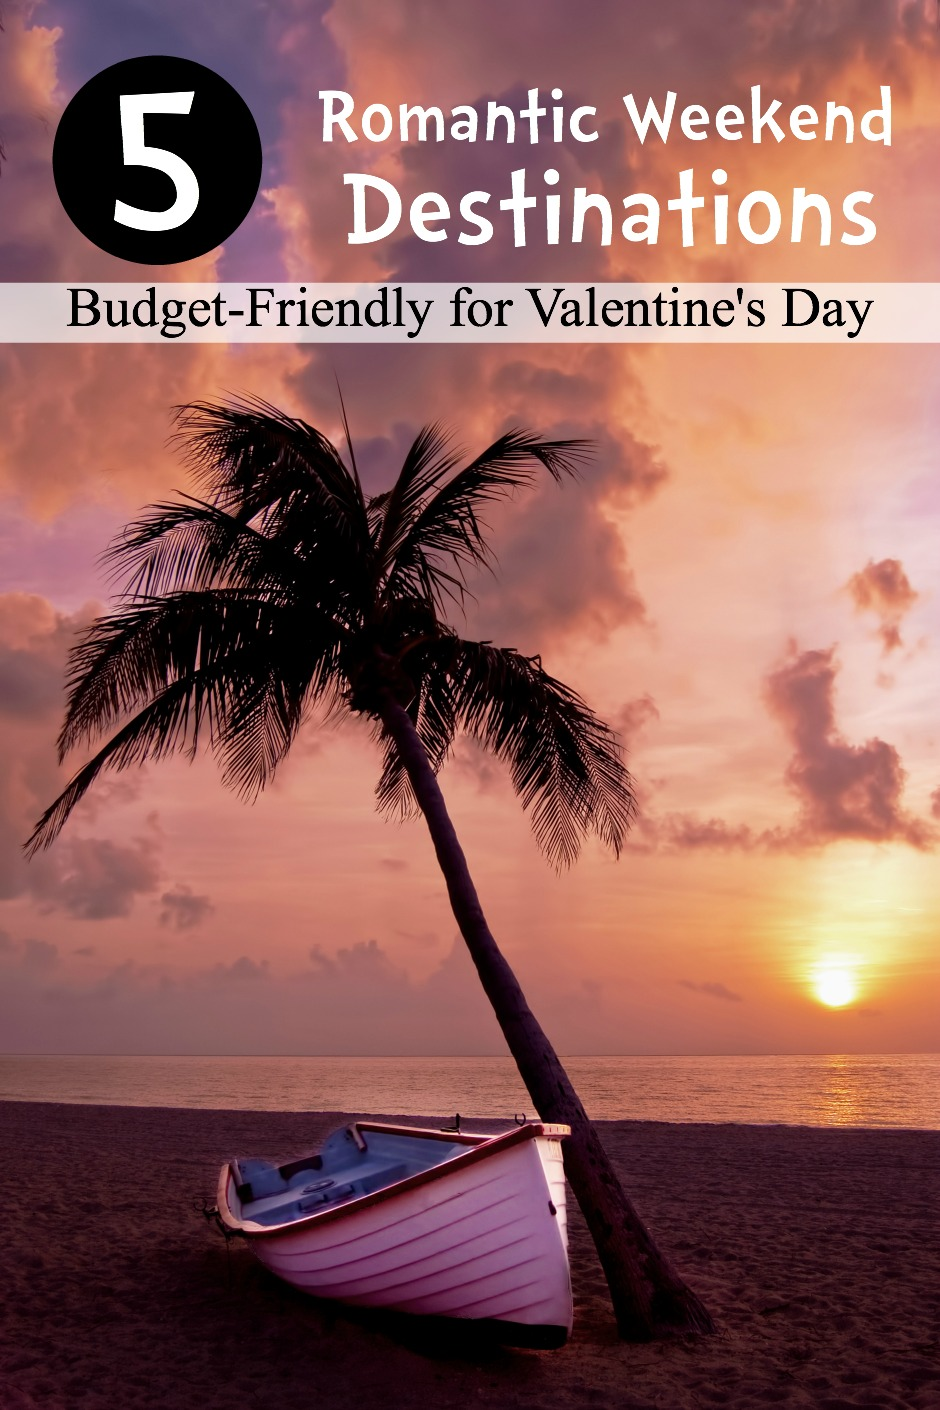 5-romantic-weekend-destinations-for-valentines-day-on-a-budget